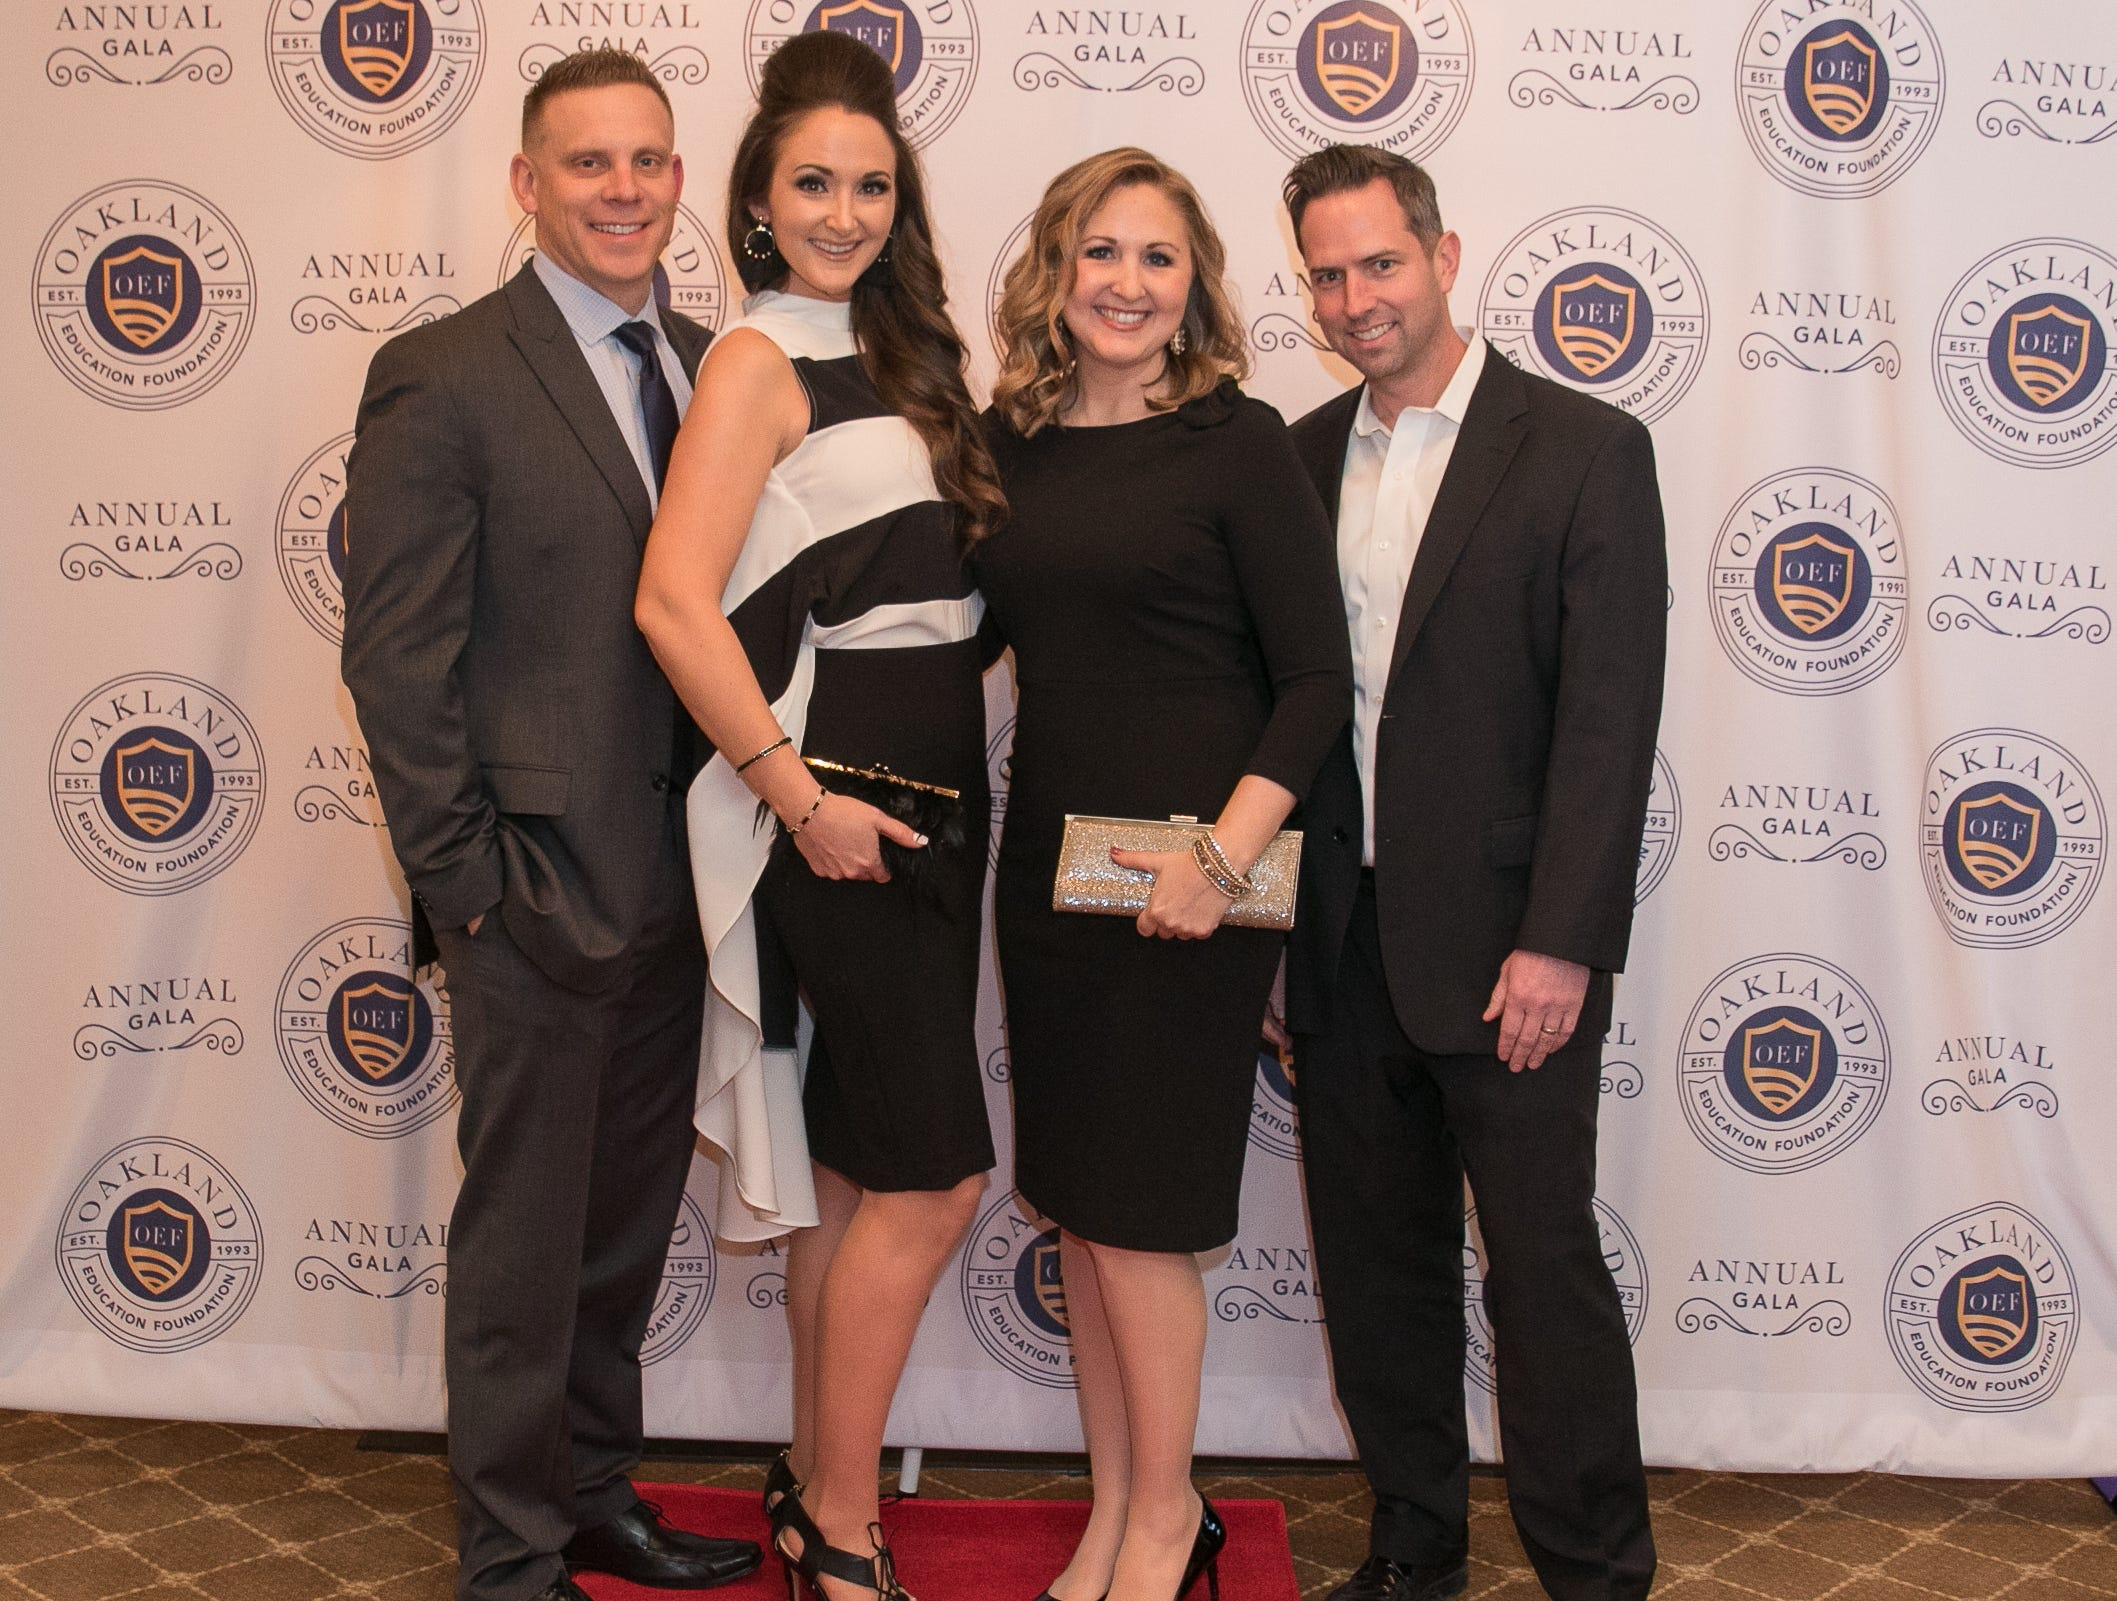 Sean and Shannon Kennedy with Alyson and Jon Dietrich. The Oakland Education Foundation held their 25th Anniversary Casino Night Gala at Preakness Hills Country Club in Wayne. 03/16/2019